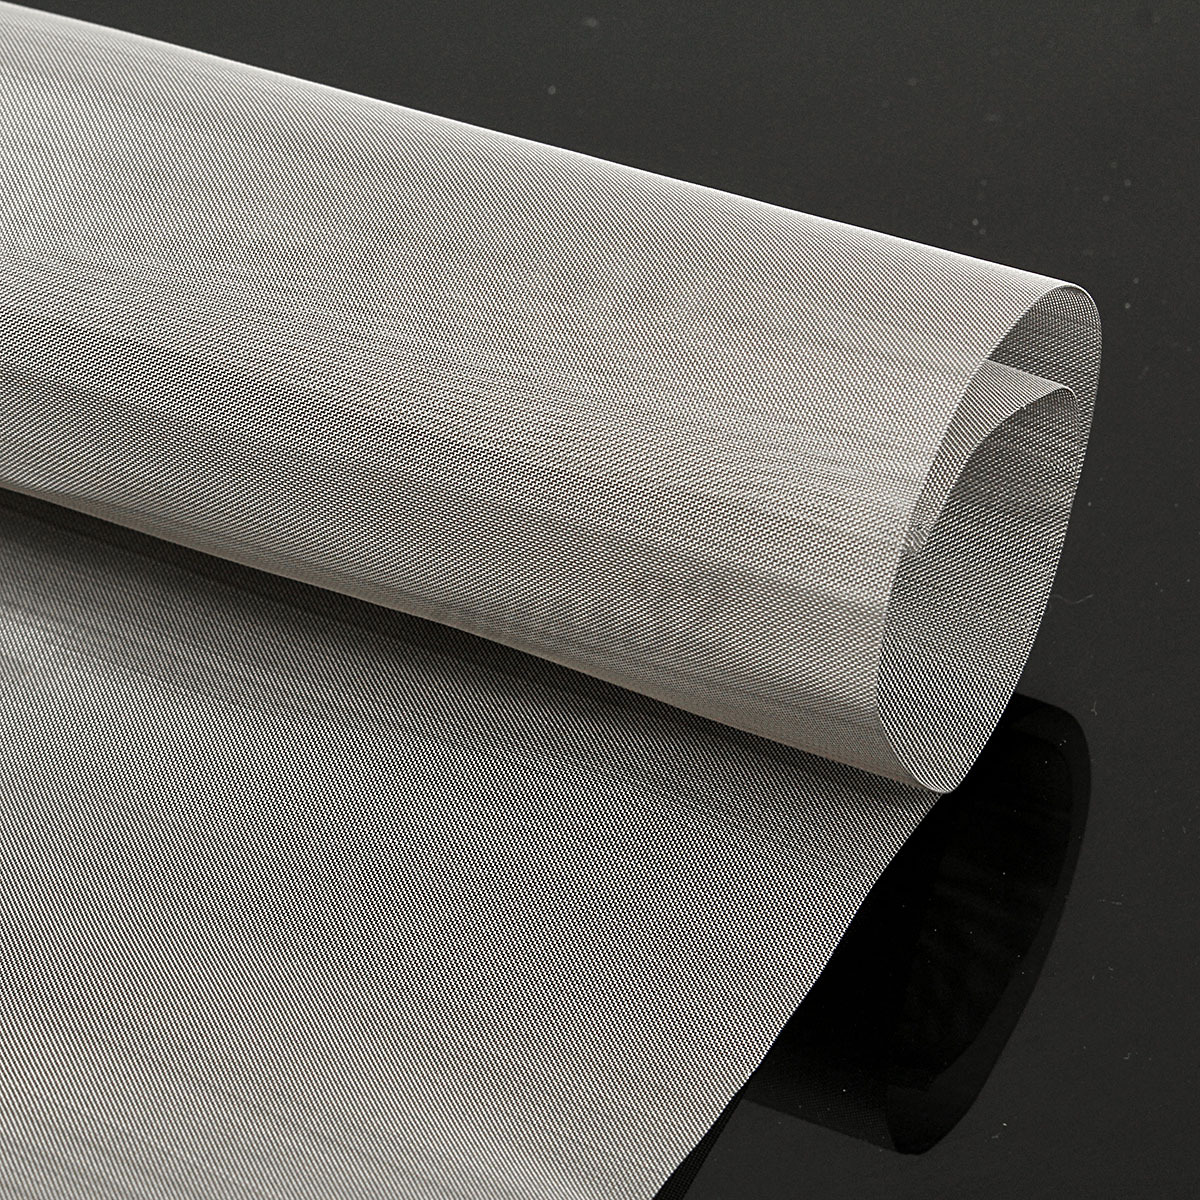 Metal Screen Material : Stainless steel mesh wire cloth screen water